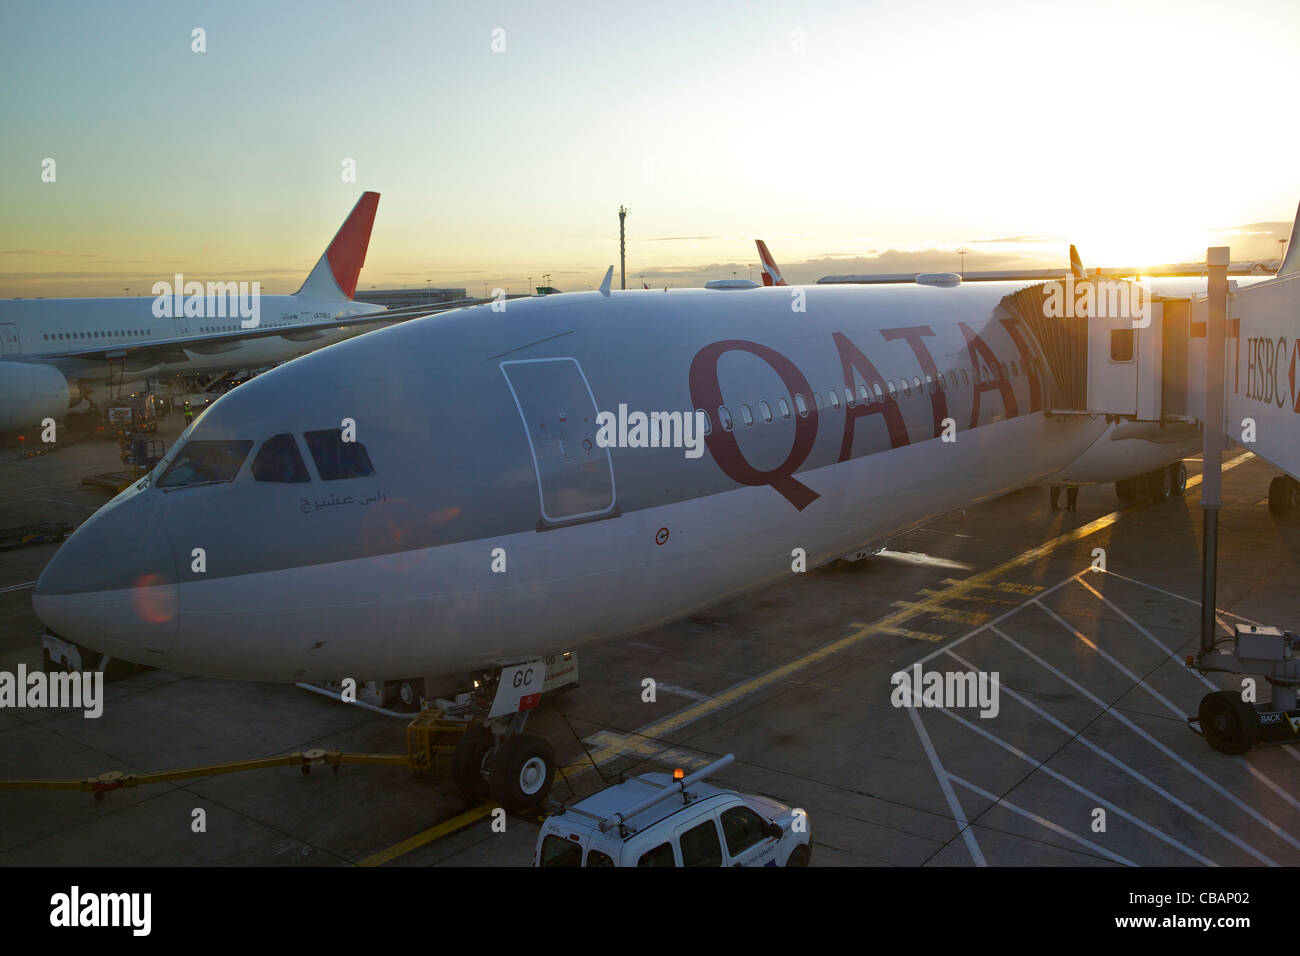 Qatar Airways Airbus A330 aircraft, parked on stand at Heathrow Airport, London, UK, United Kingdom, GB, Great Britain, - Stock Image